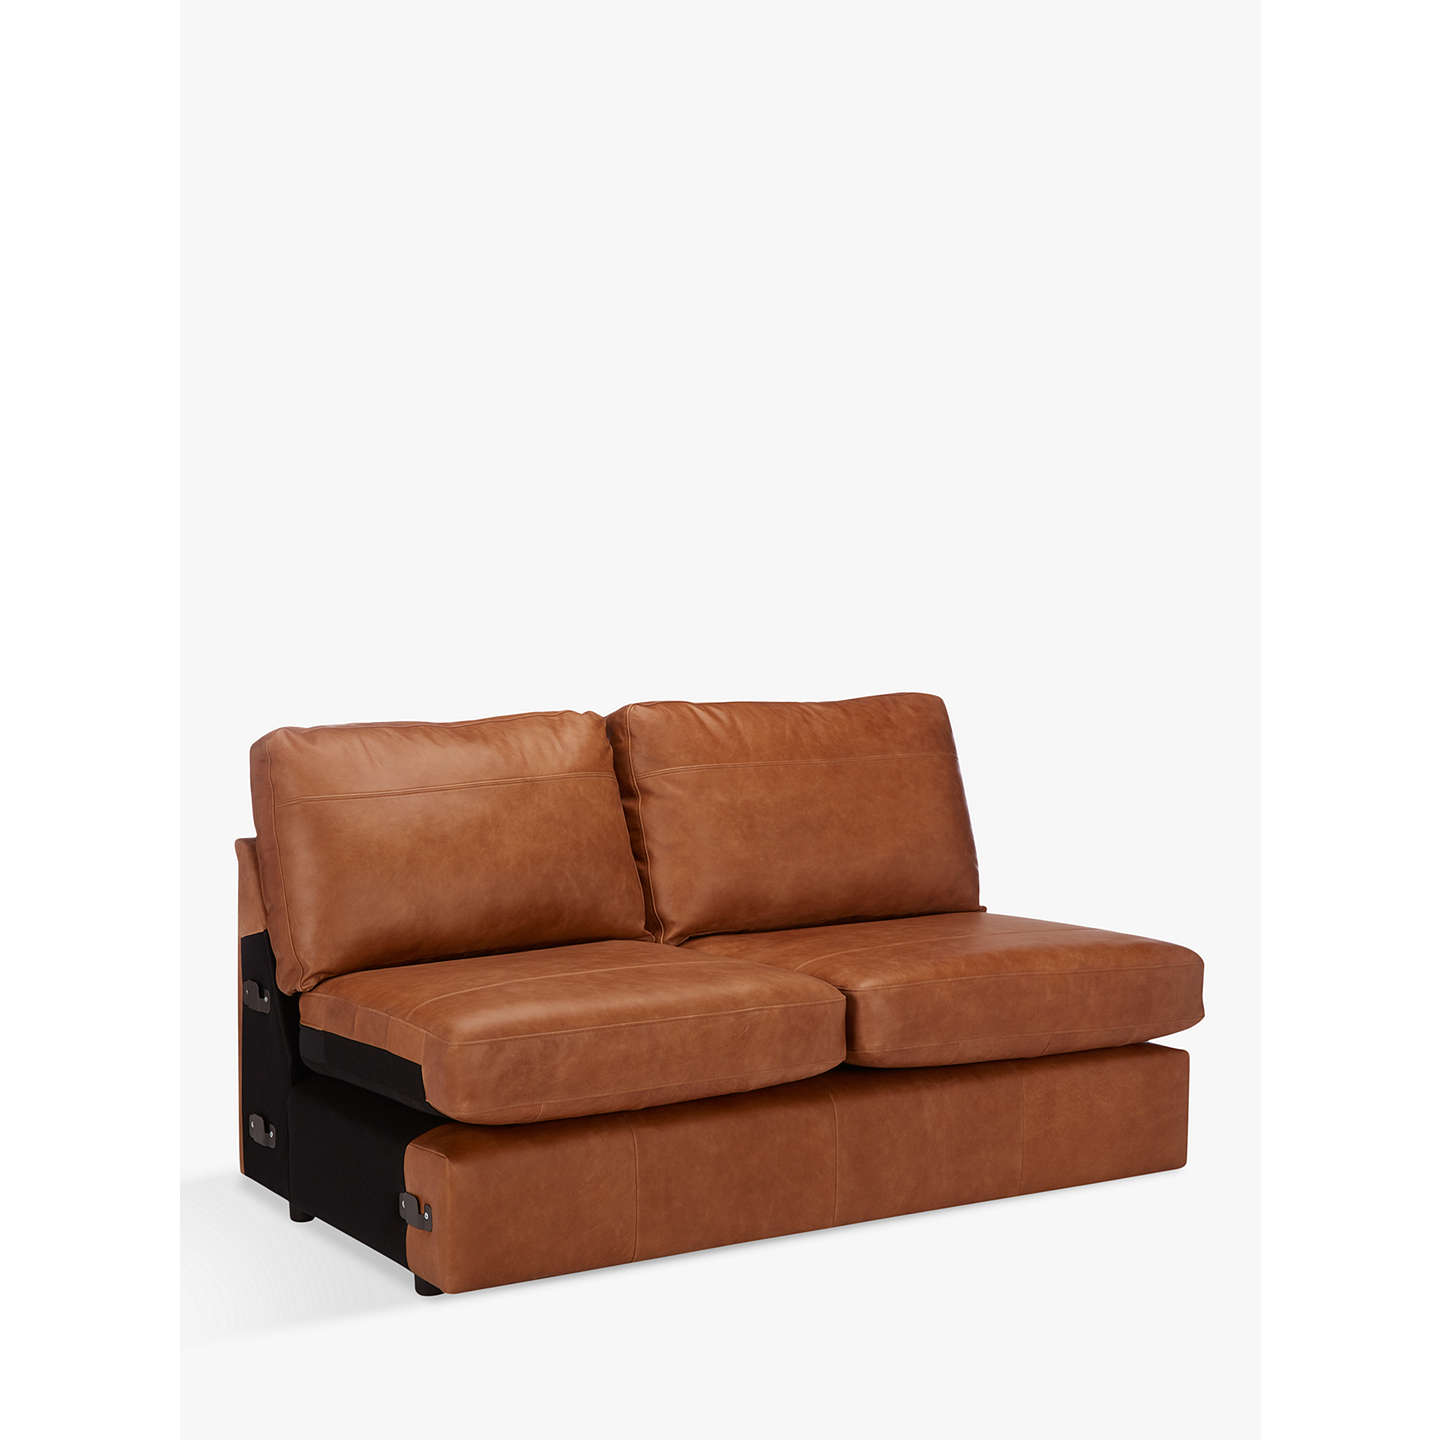 armless leather chairs. BuyJohn Lewis Oliver Large 3 Seater Armless Leather Sofa, Dark Leg, Luster Cappuccino Online Chairs